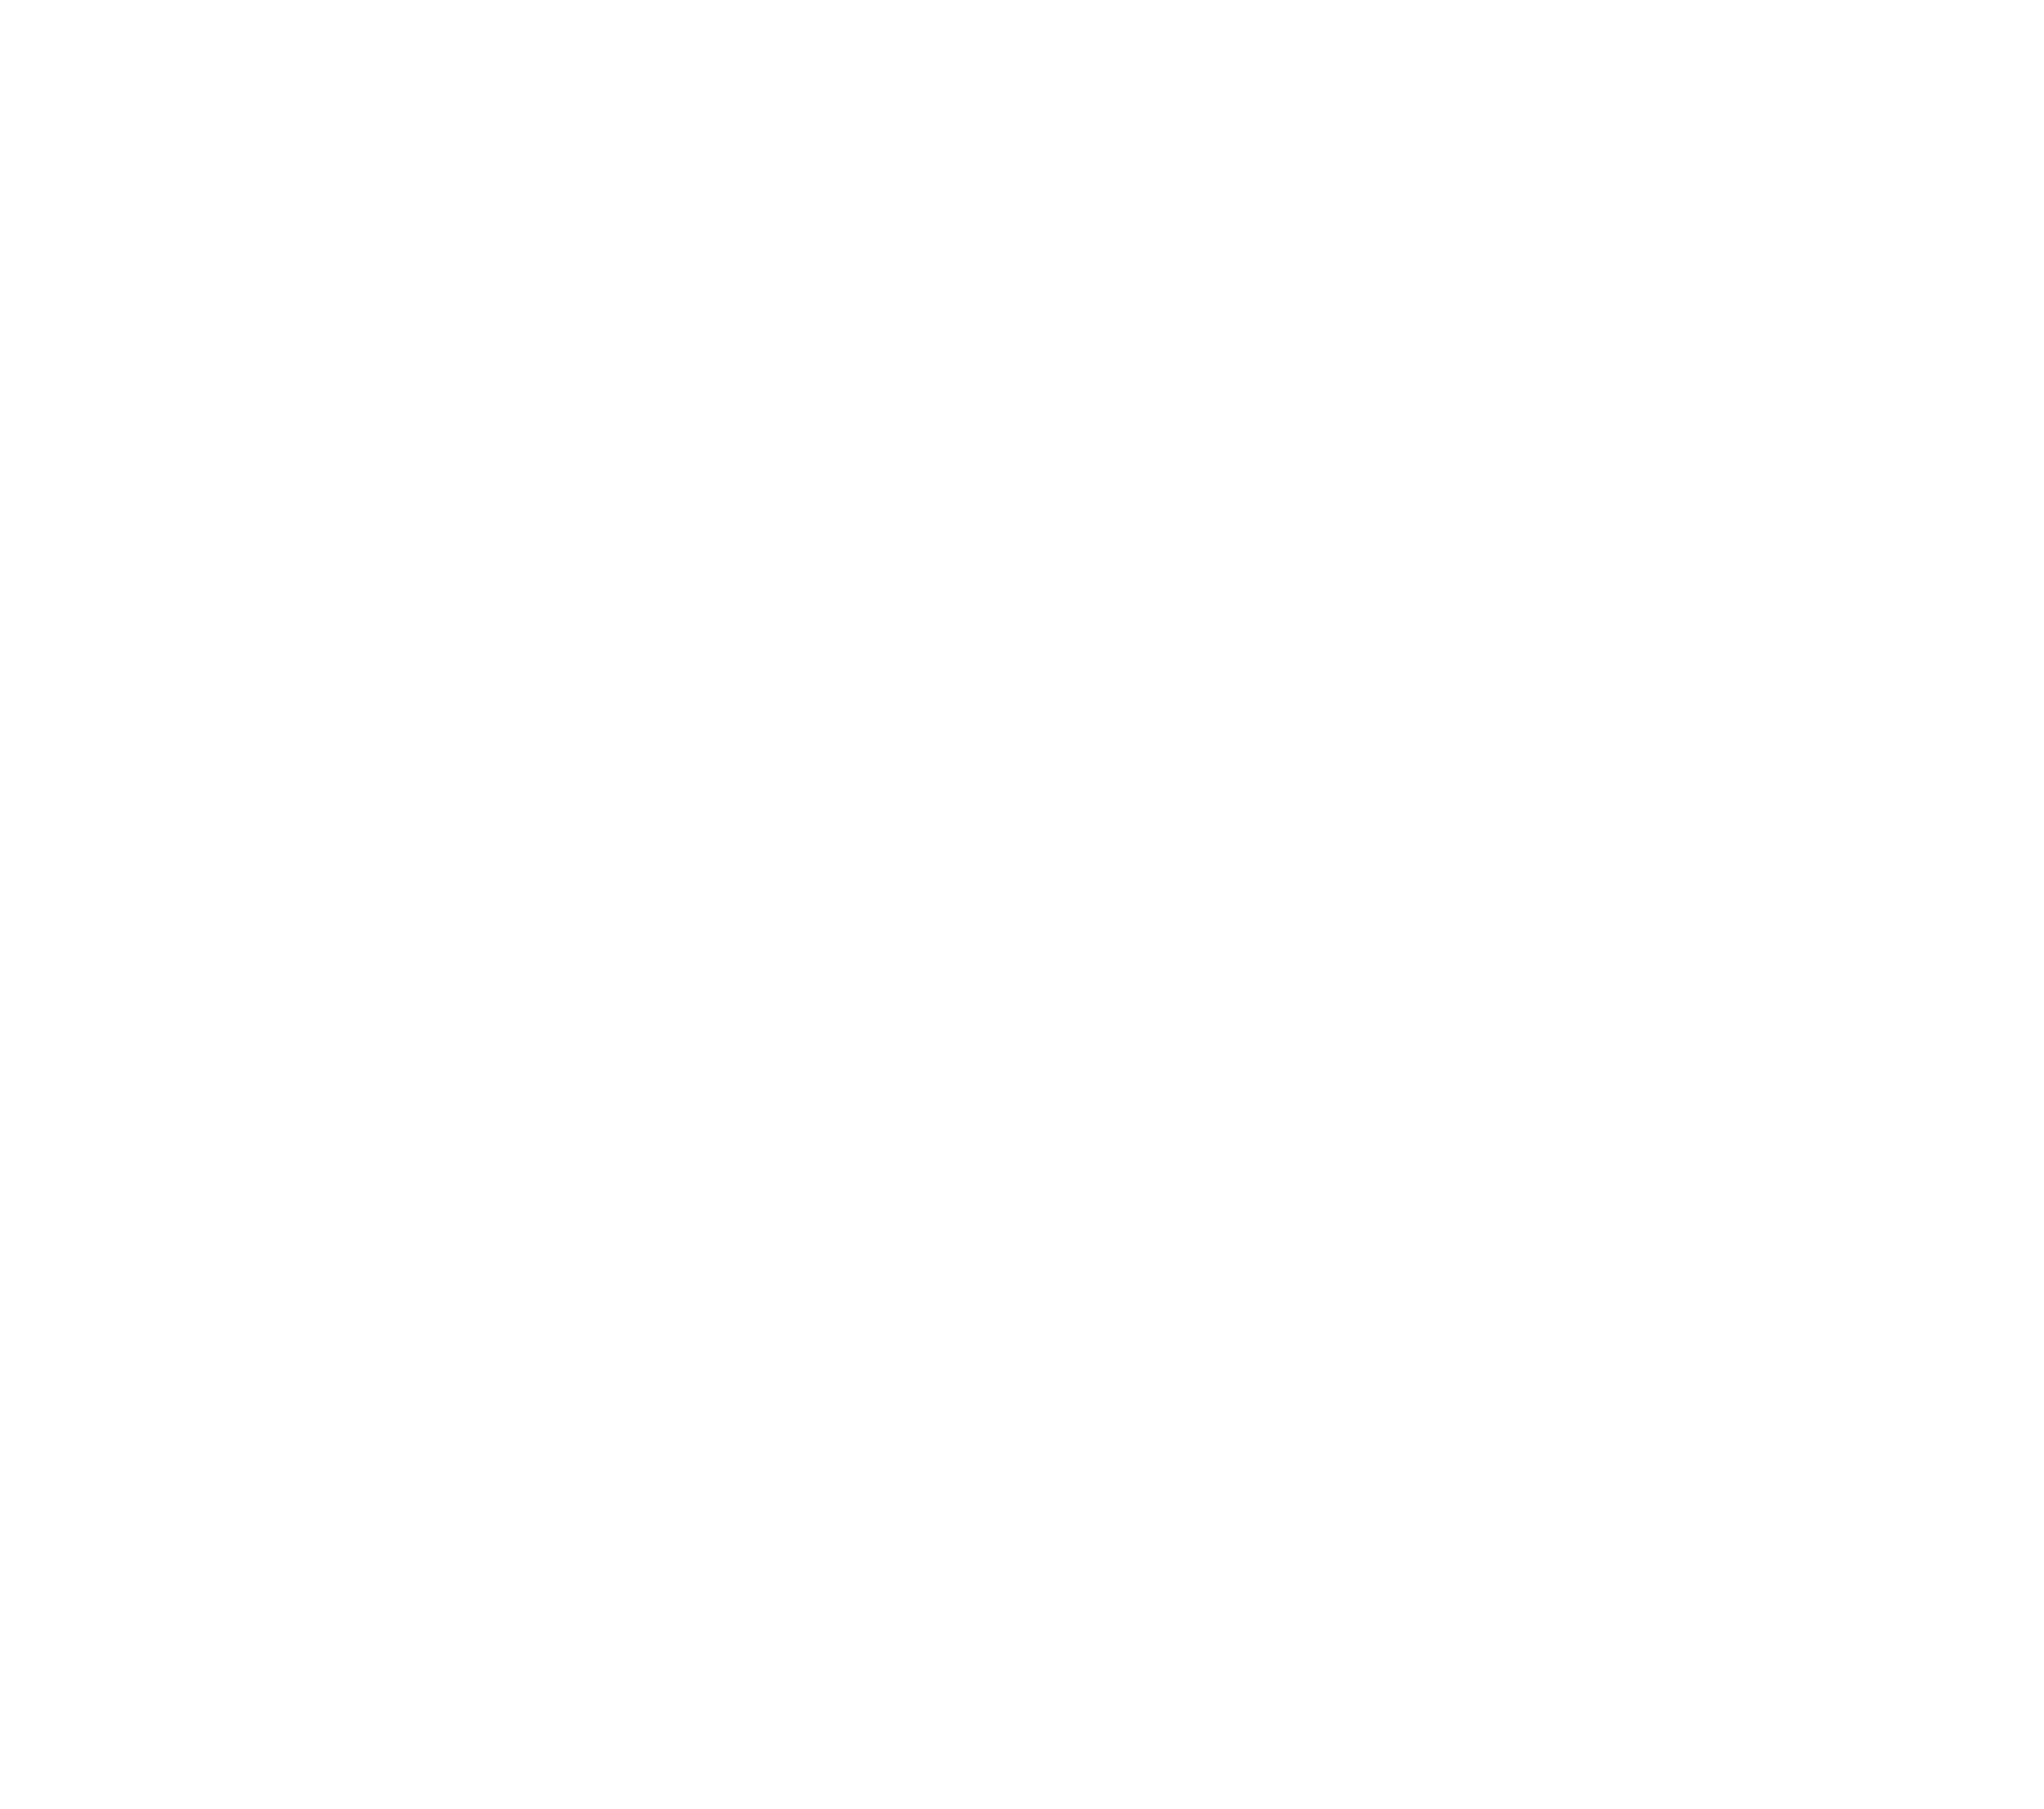 FAI_Relief_52x46_White 32bit no tm.png